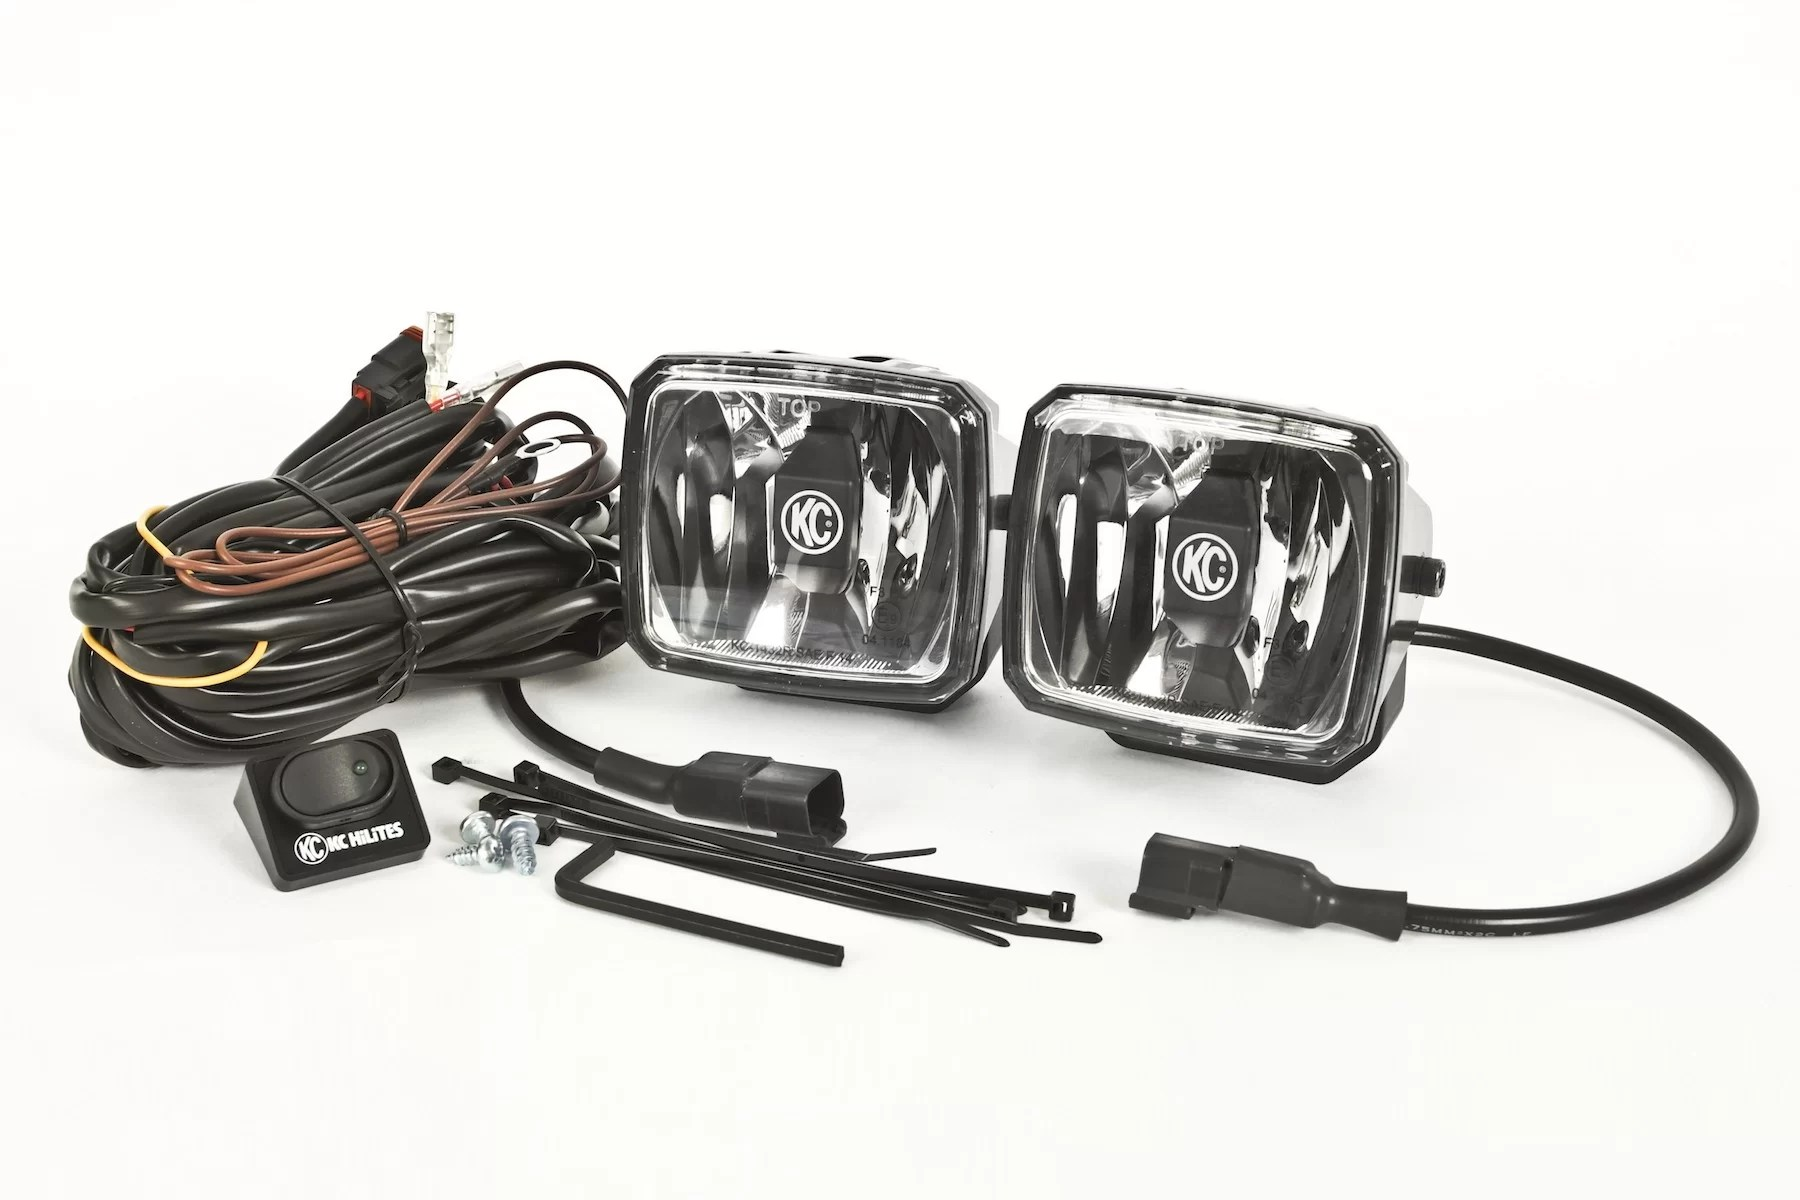 hight resolution of kc hilites gravity 34 spotlight set with wiring harness